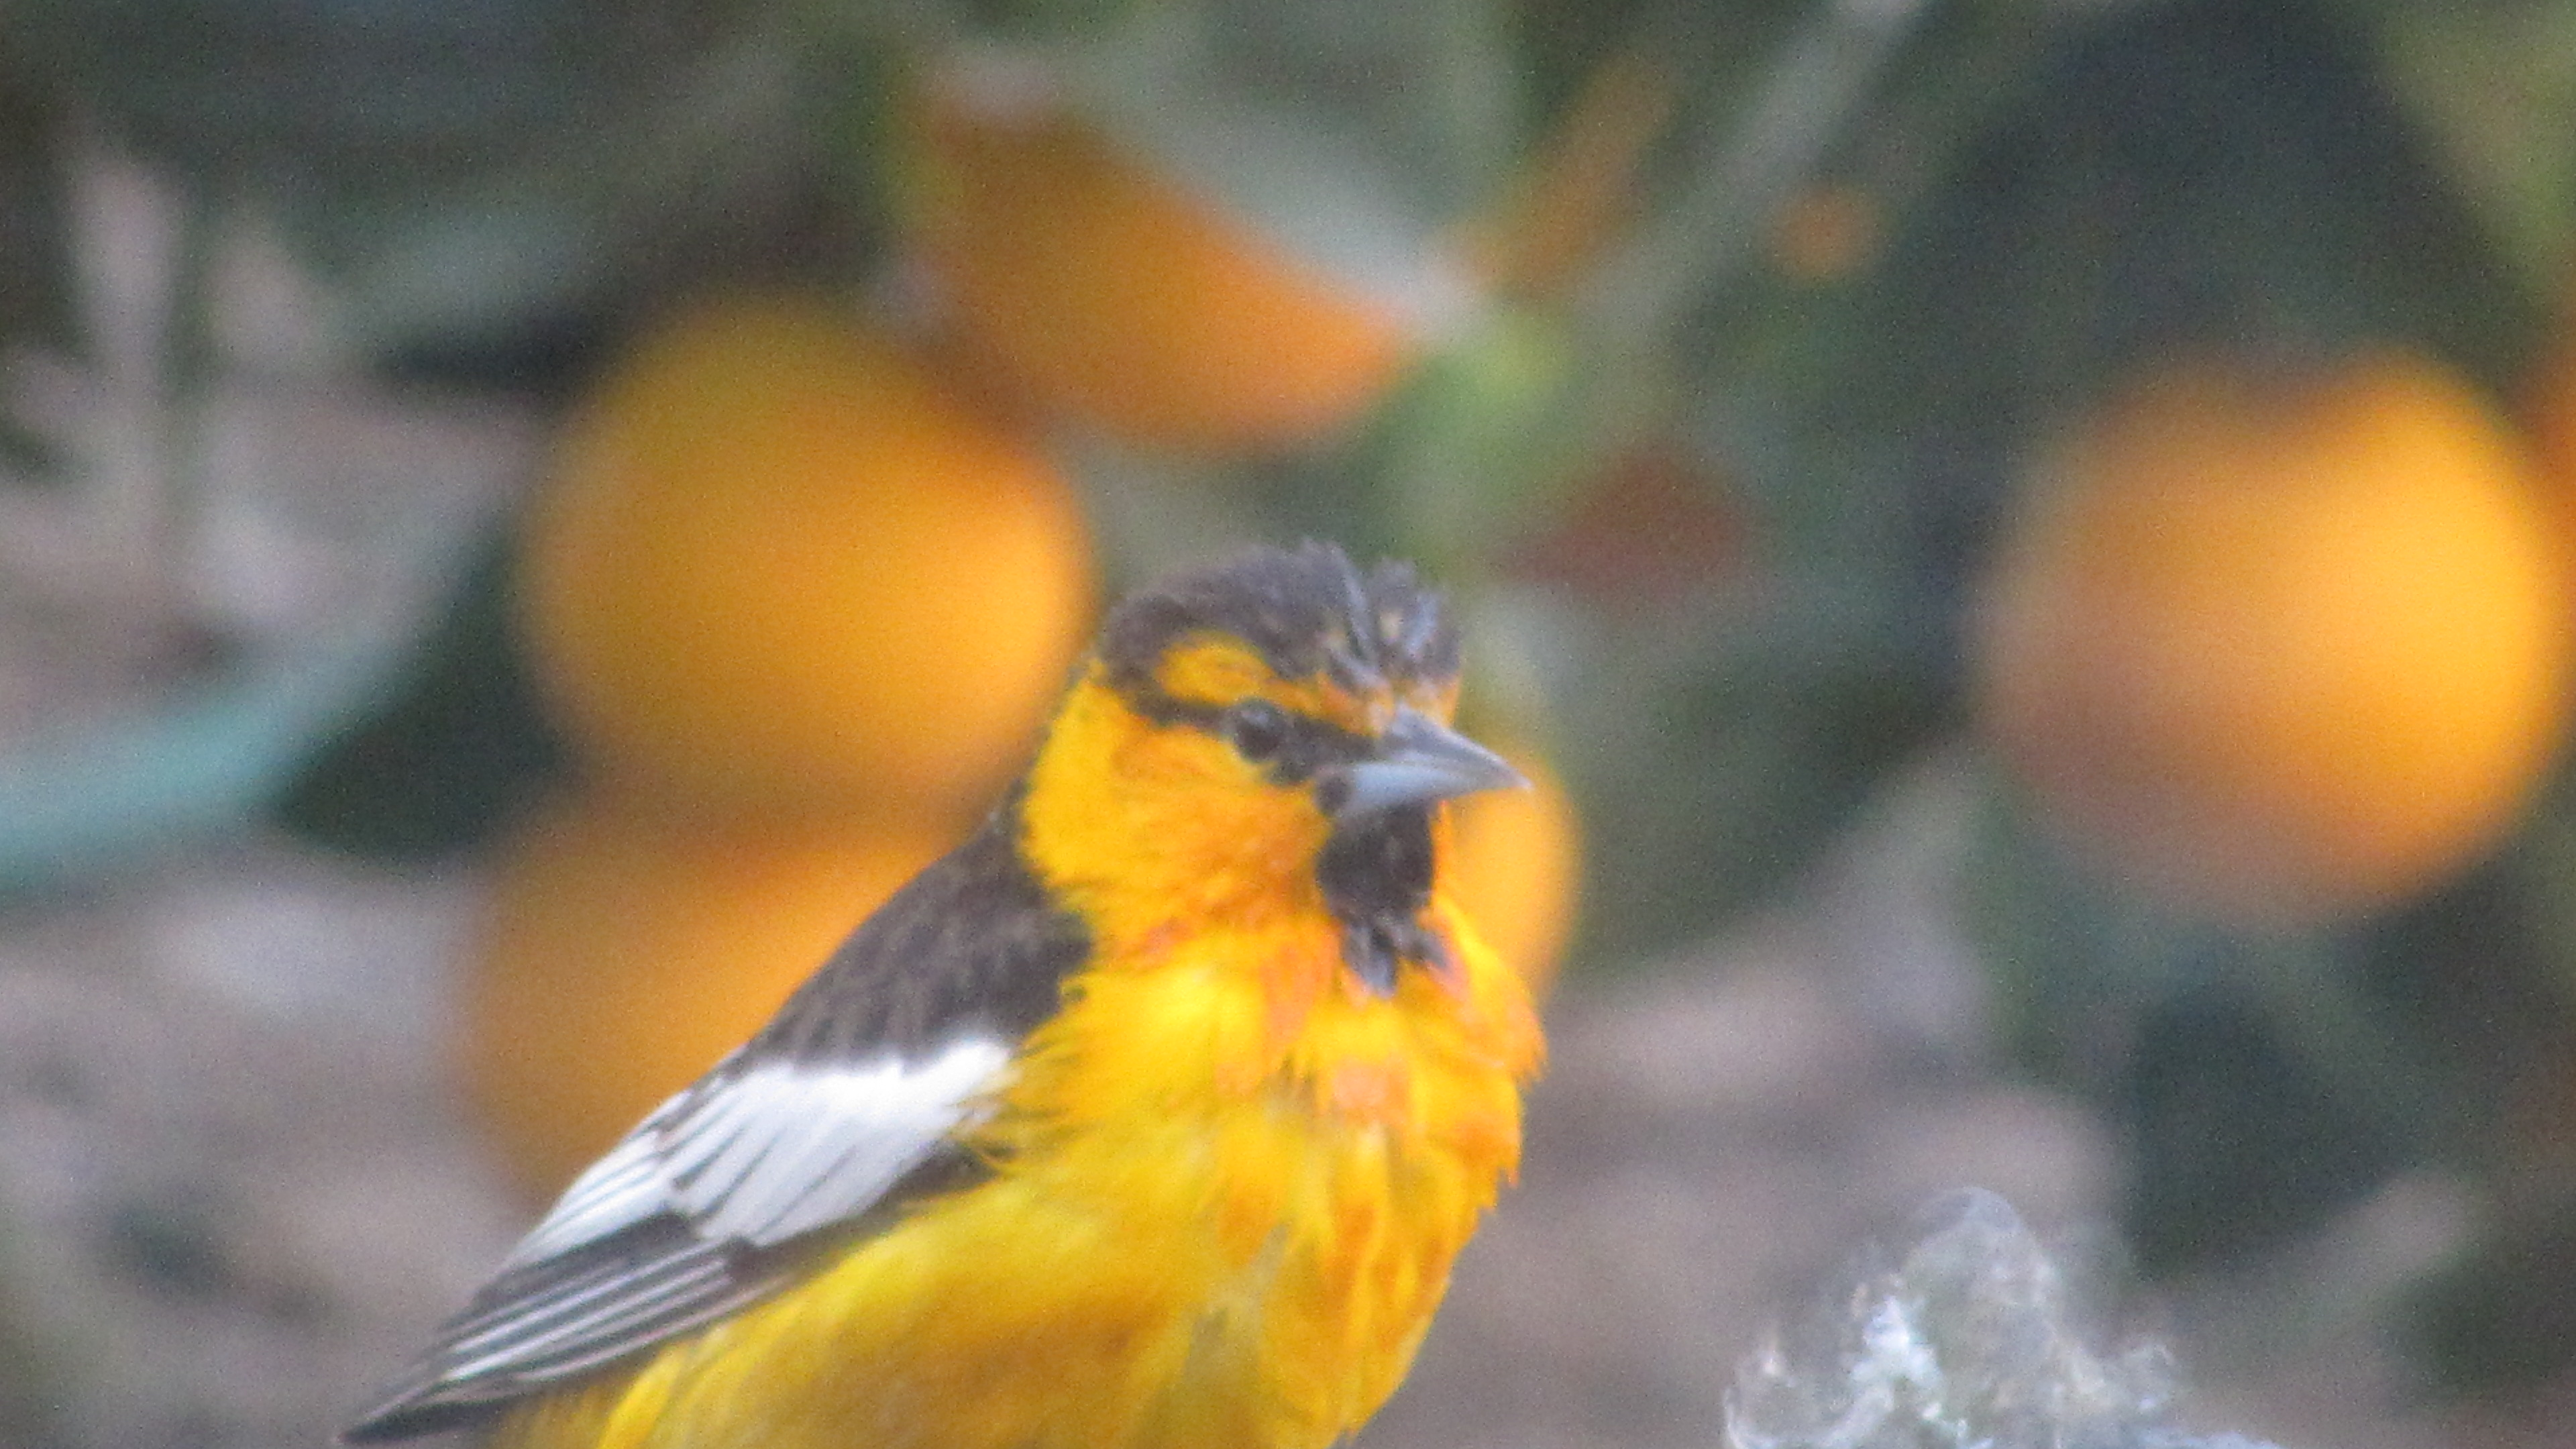 Bullocks oriole 3 28 20 Orange CA